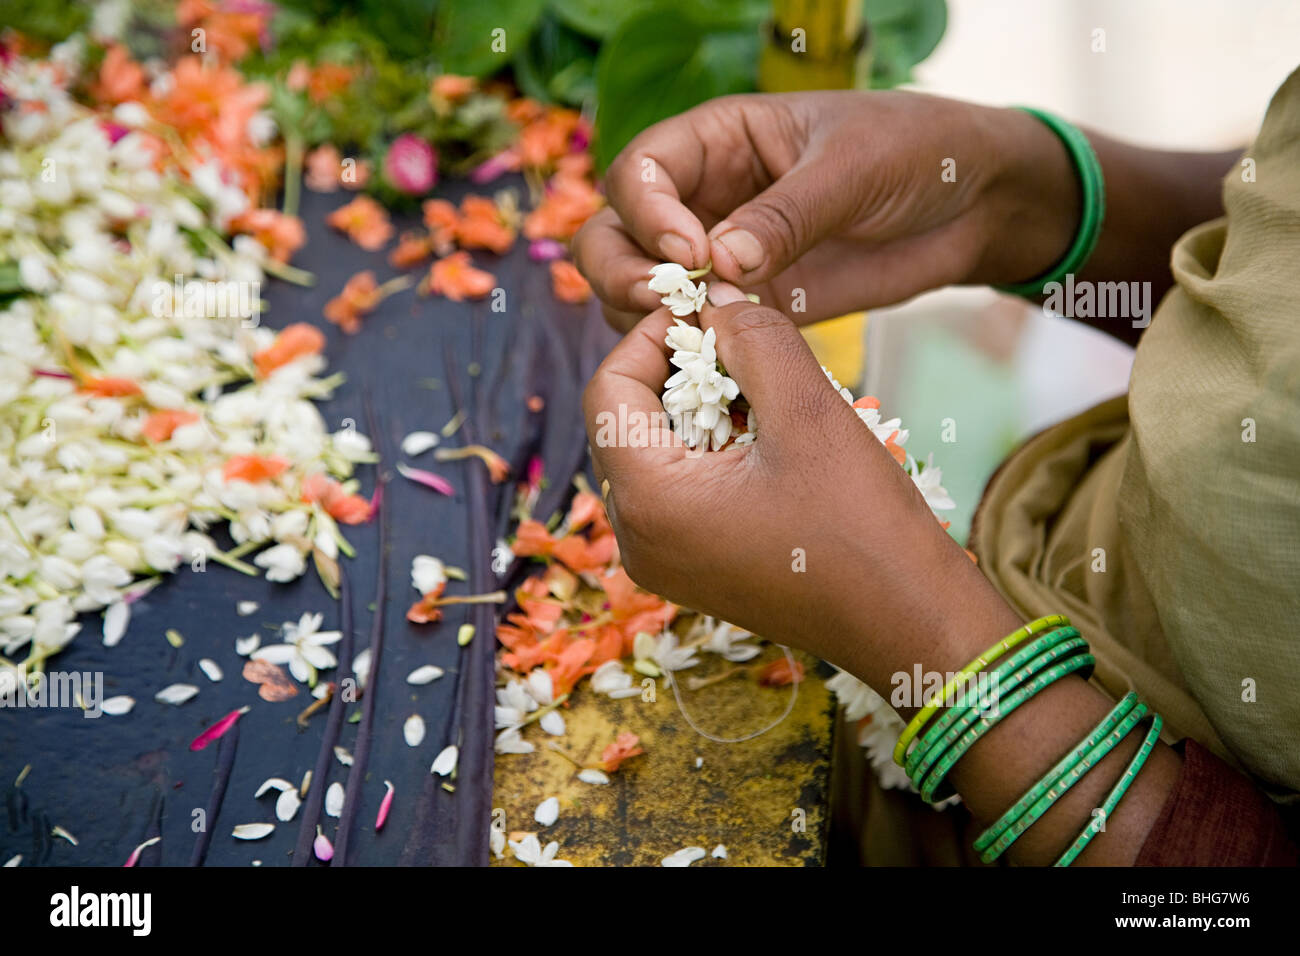 Woman making wreaths from jasmine flowers - Stock Image